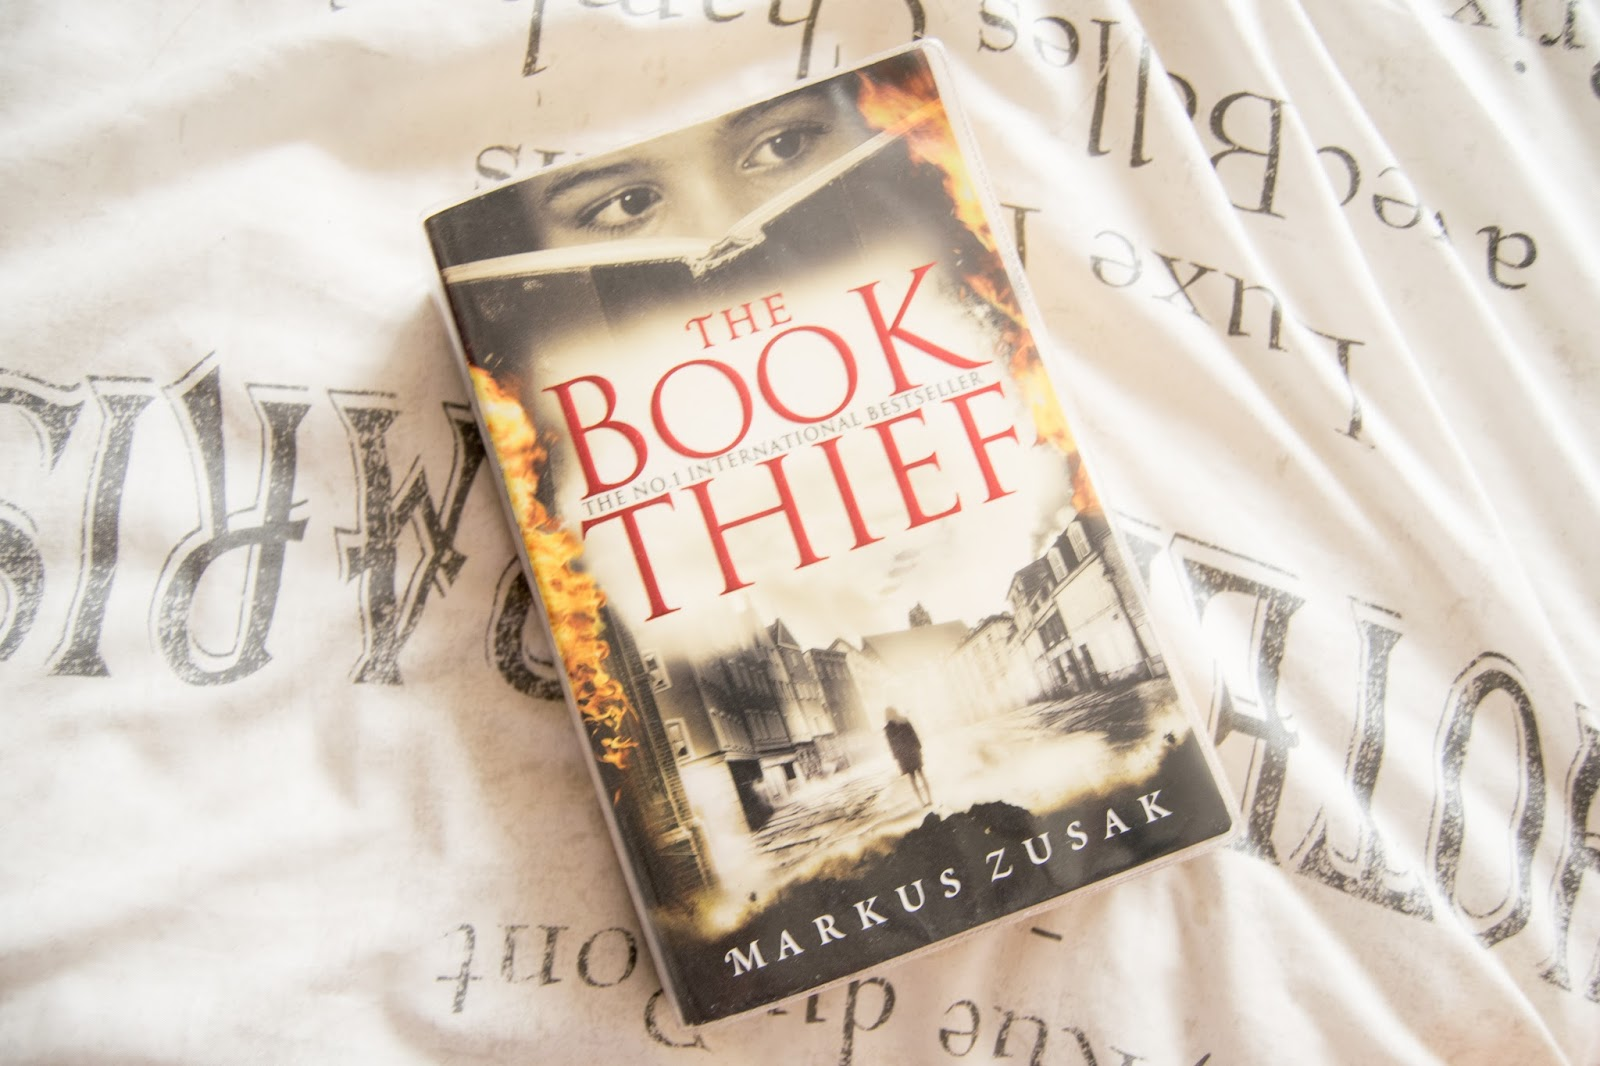 the life of ilsa in marcus zusaks the book thief Find the quotes you need in markus zusak's the book thief  the book thief quotes from litcharts ilsa hermann's little black book quotes.